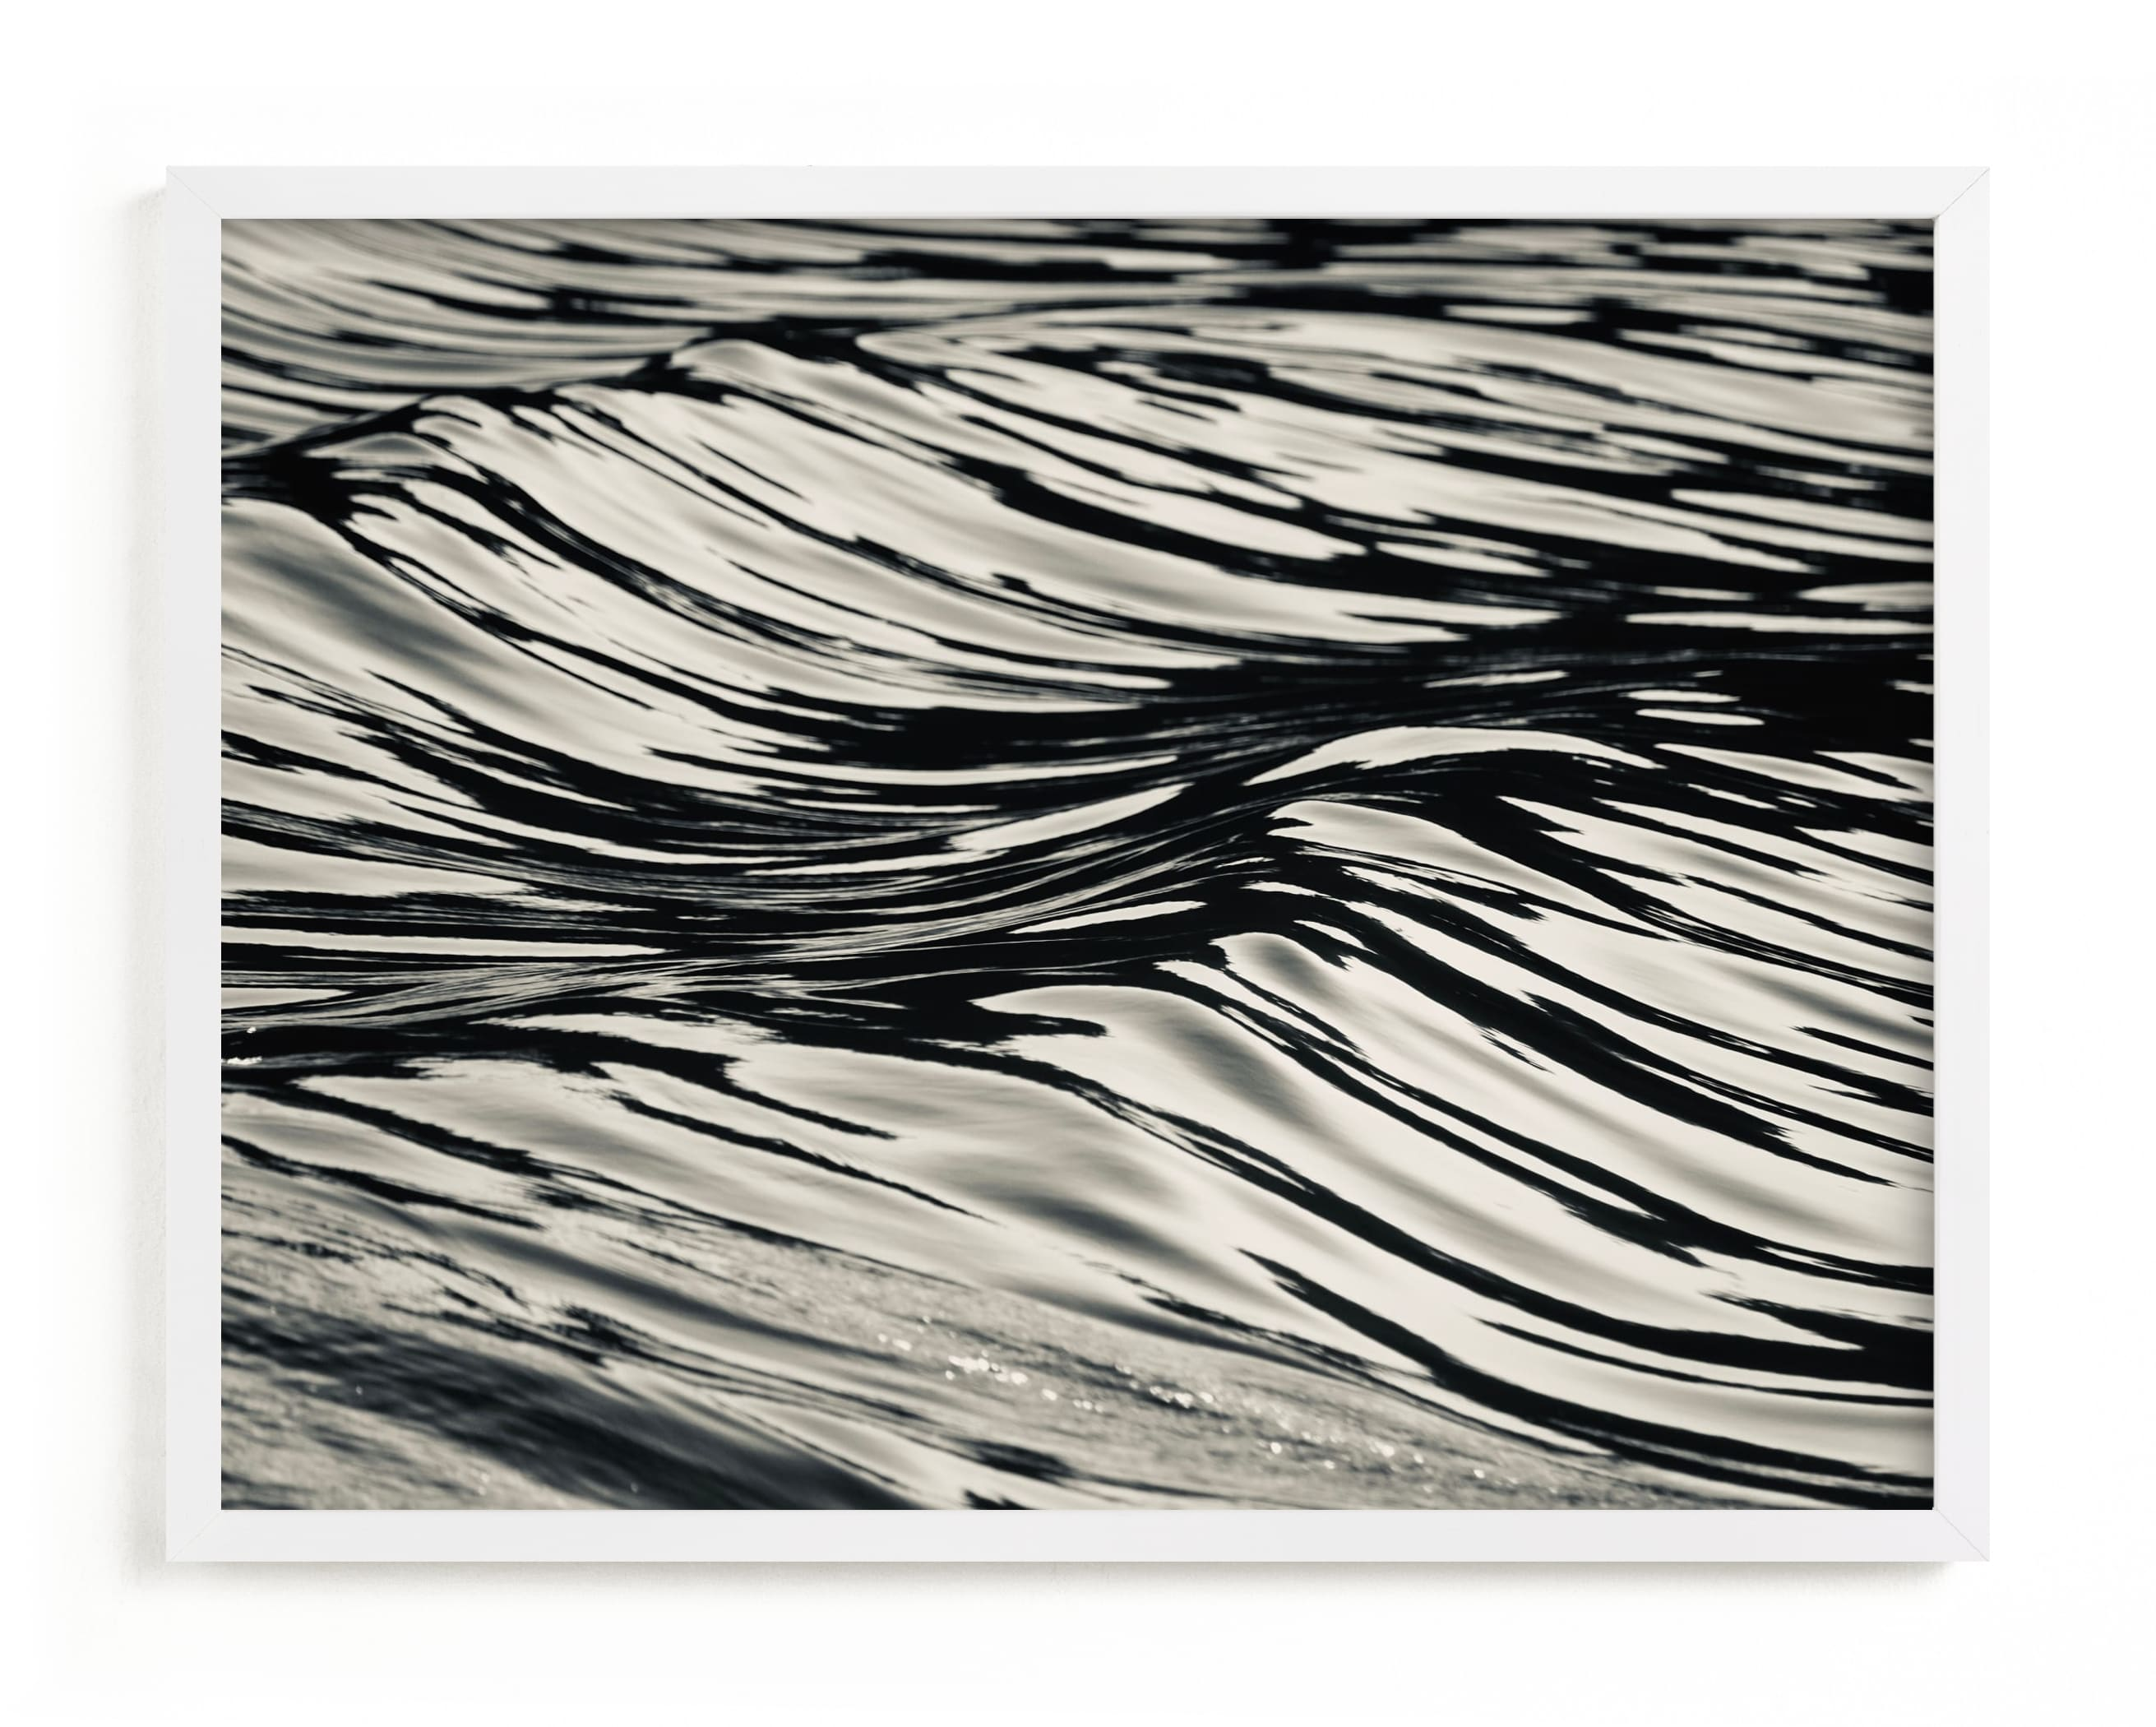 This is a black and white art by Jan Kessel called Wave Forms.